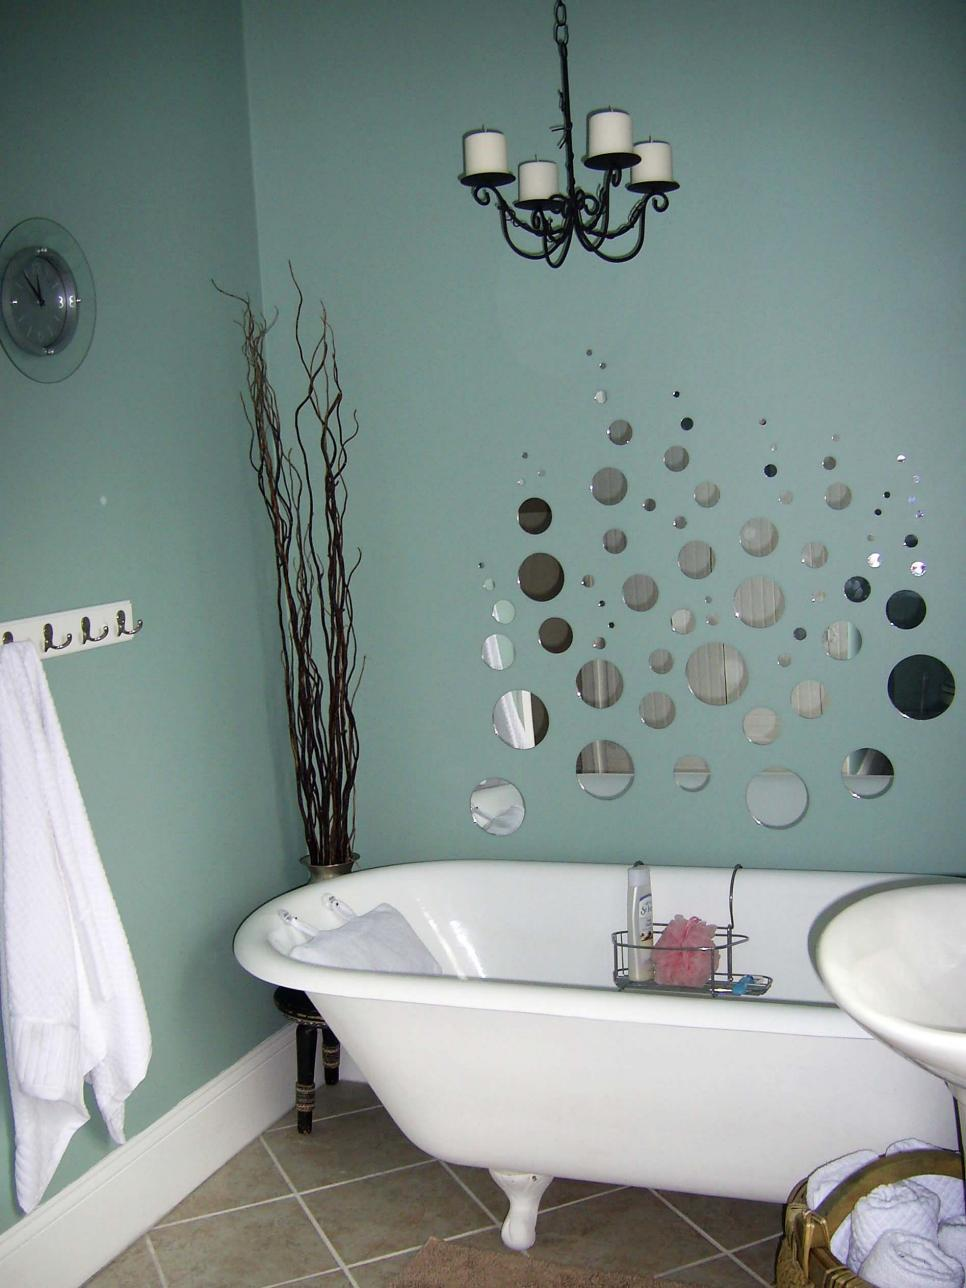 Bathrooms on a budget our 10 favorites from rate my space for Bathroom remodel ideas on a budget